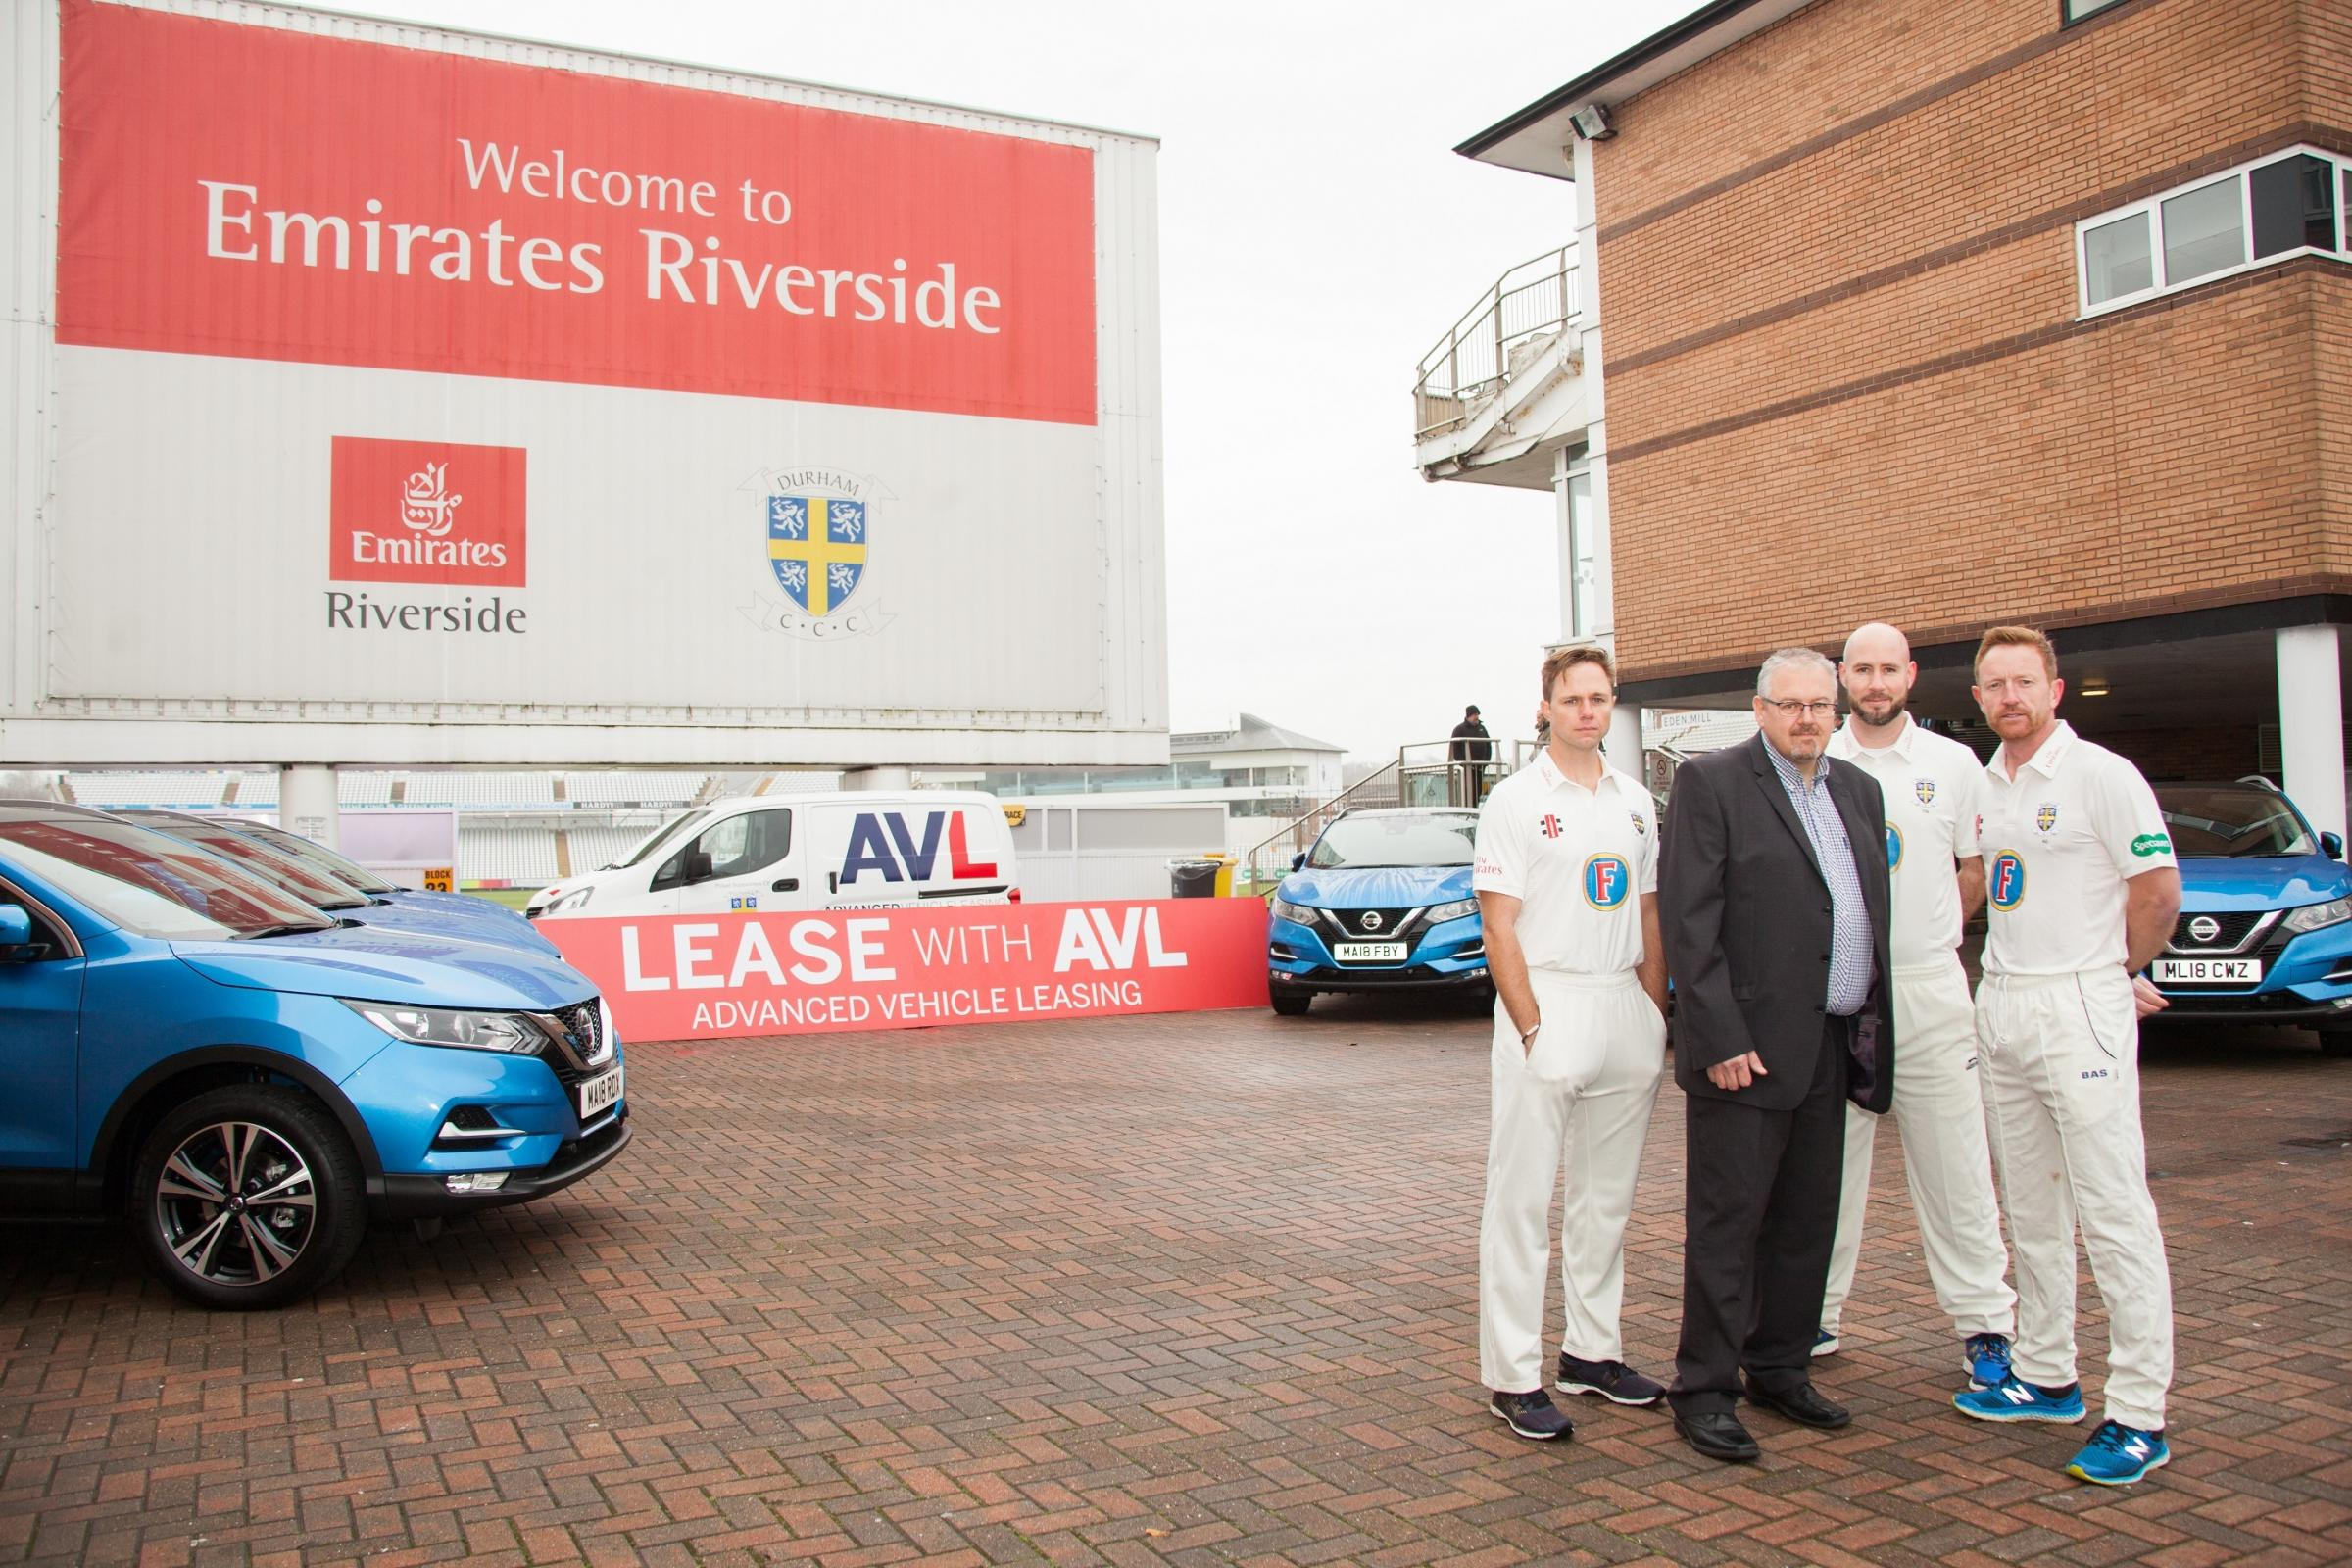 AVL will be Durham County Cricket Club's new partner